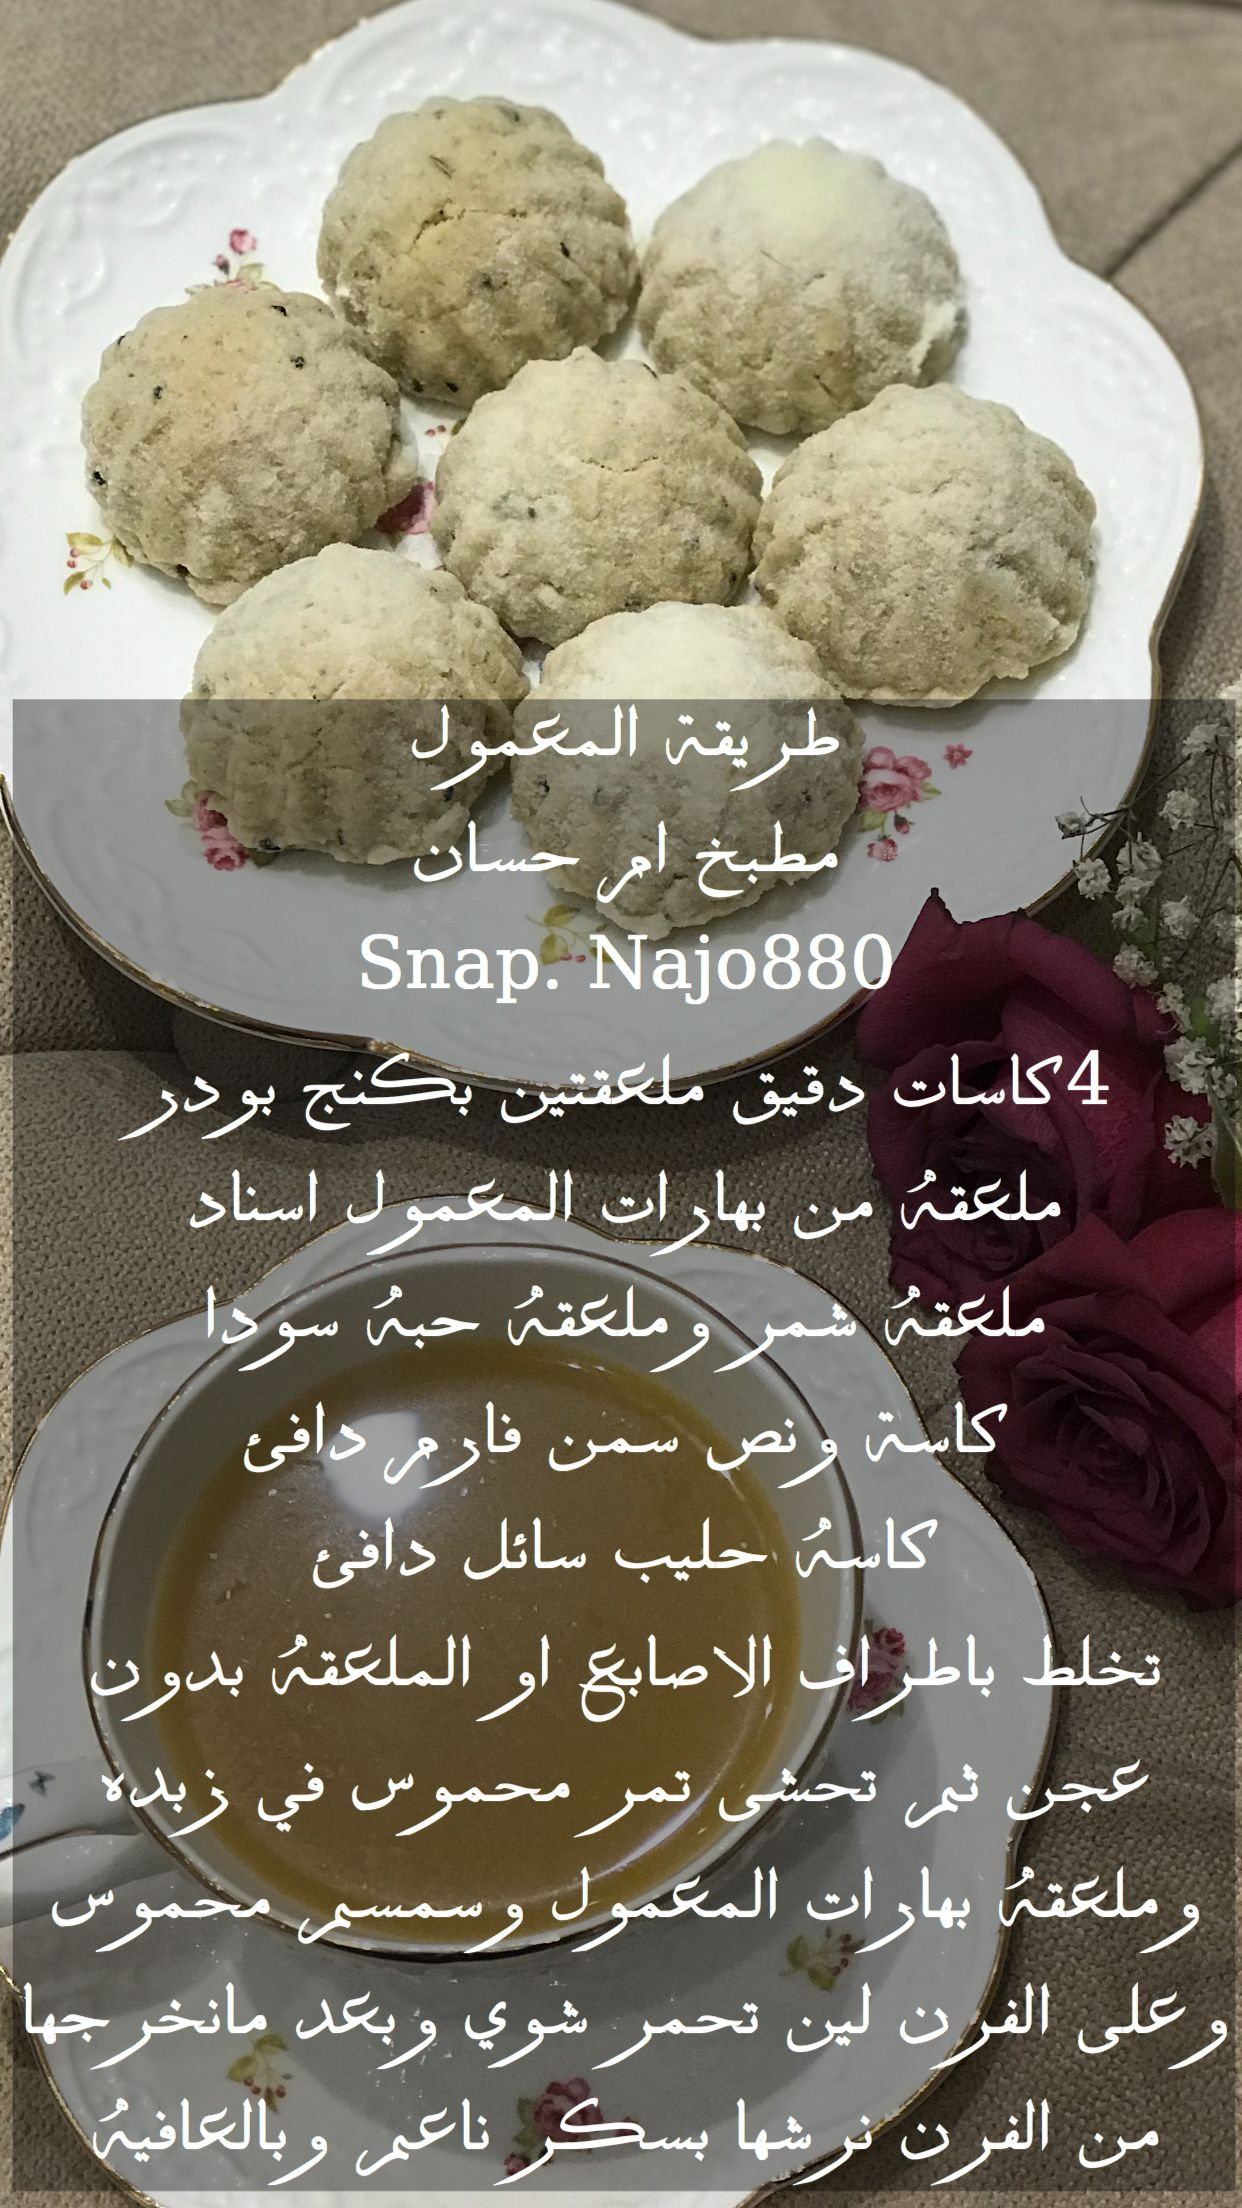 Pin By Najo880 On مطبخ ام حسان Desserts Breakfast Food